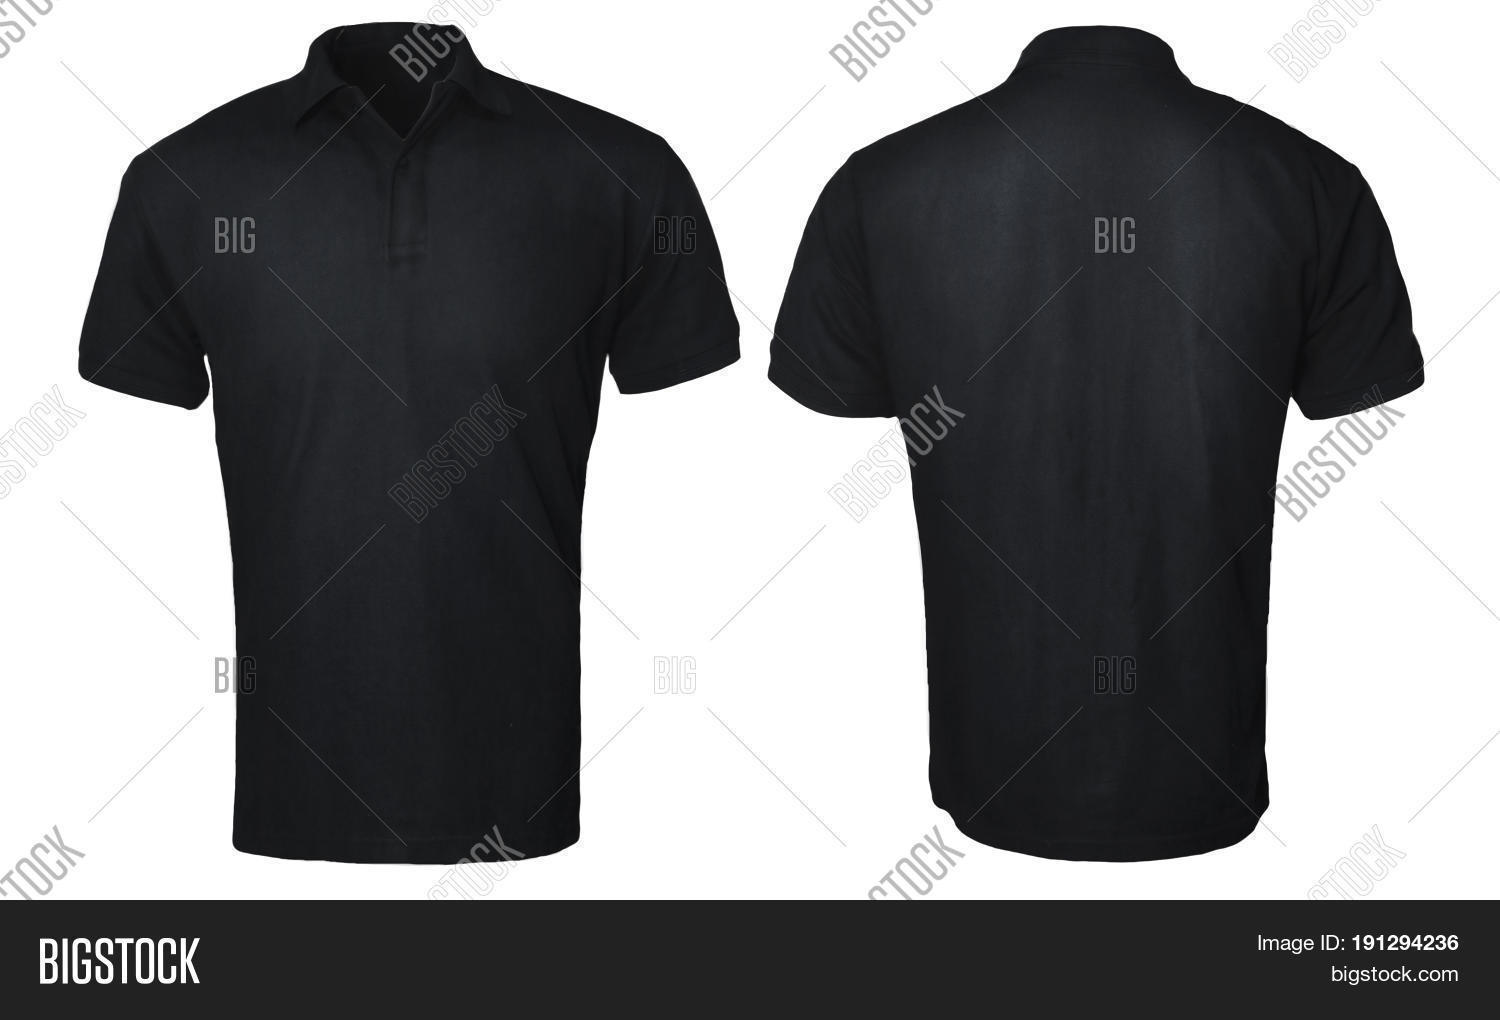 Black t shirt model template - Blank Polo Shirt Mock Up Template Front And Back View Isolated On White Plain Black T